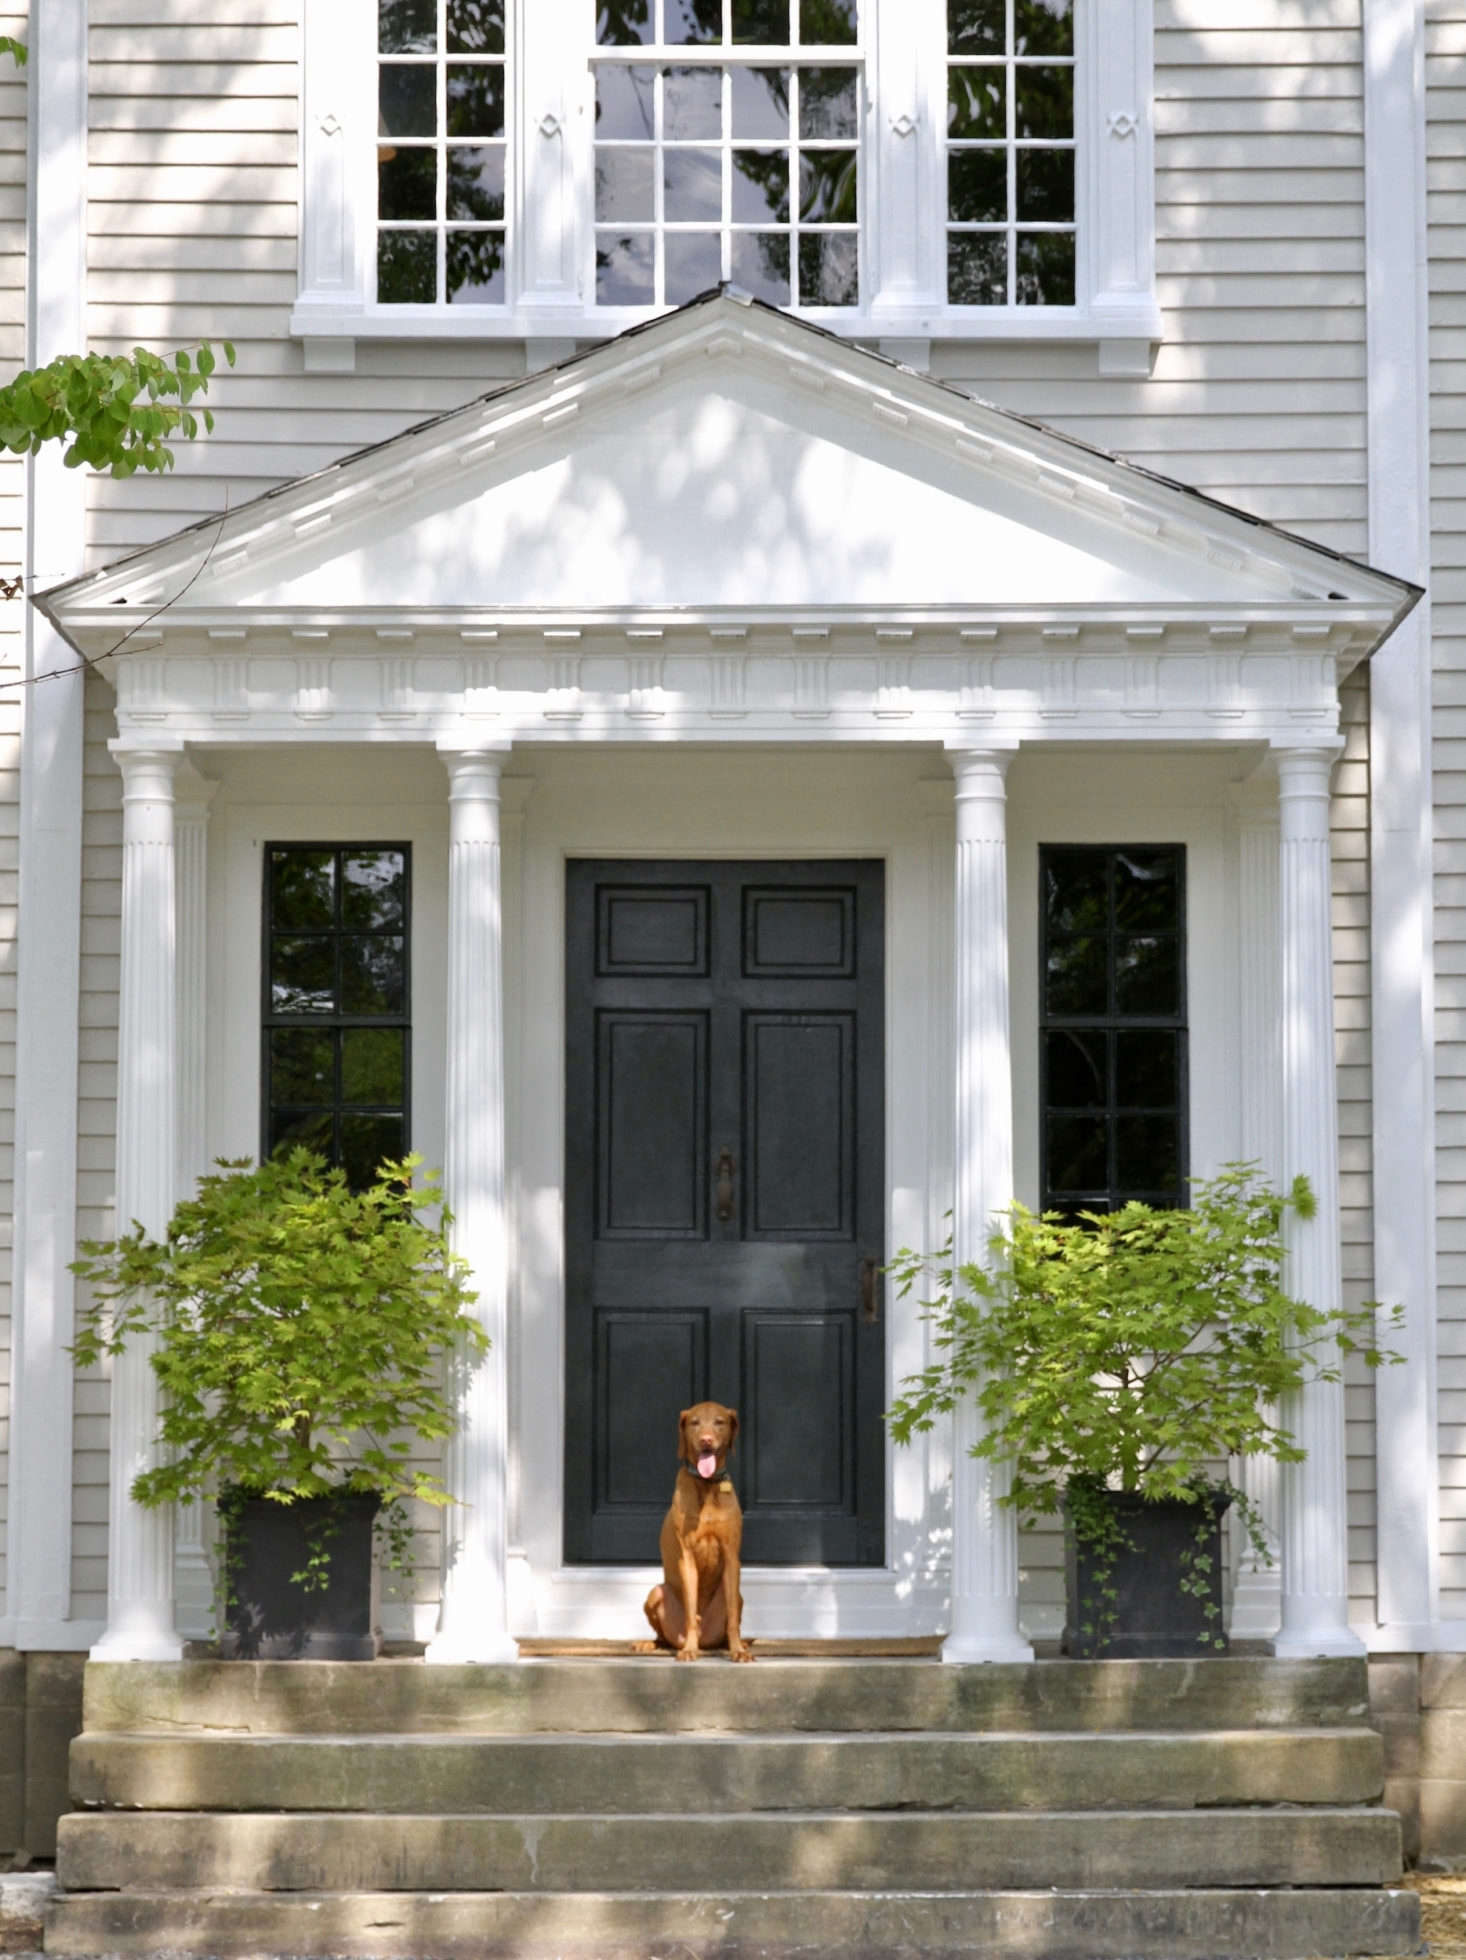 Dutch, Scott and Frank's photogenic dog, greets guests. The house, located in the village of Richmond in western Massachusetts, was at one point a summer arts school, hosting artists, musicians, and composers like Leonard Bernstein and Aaron Copland.